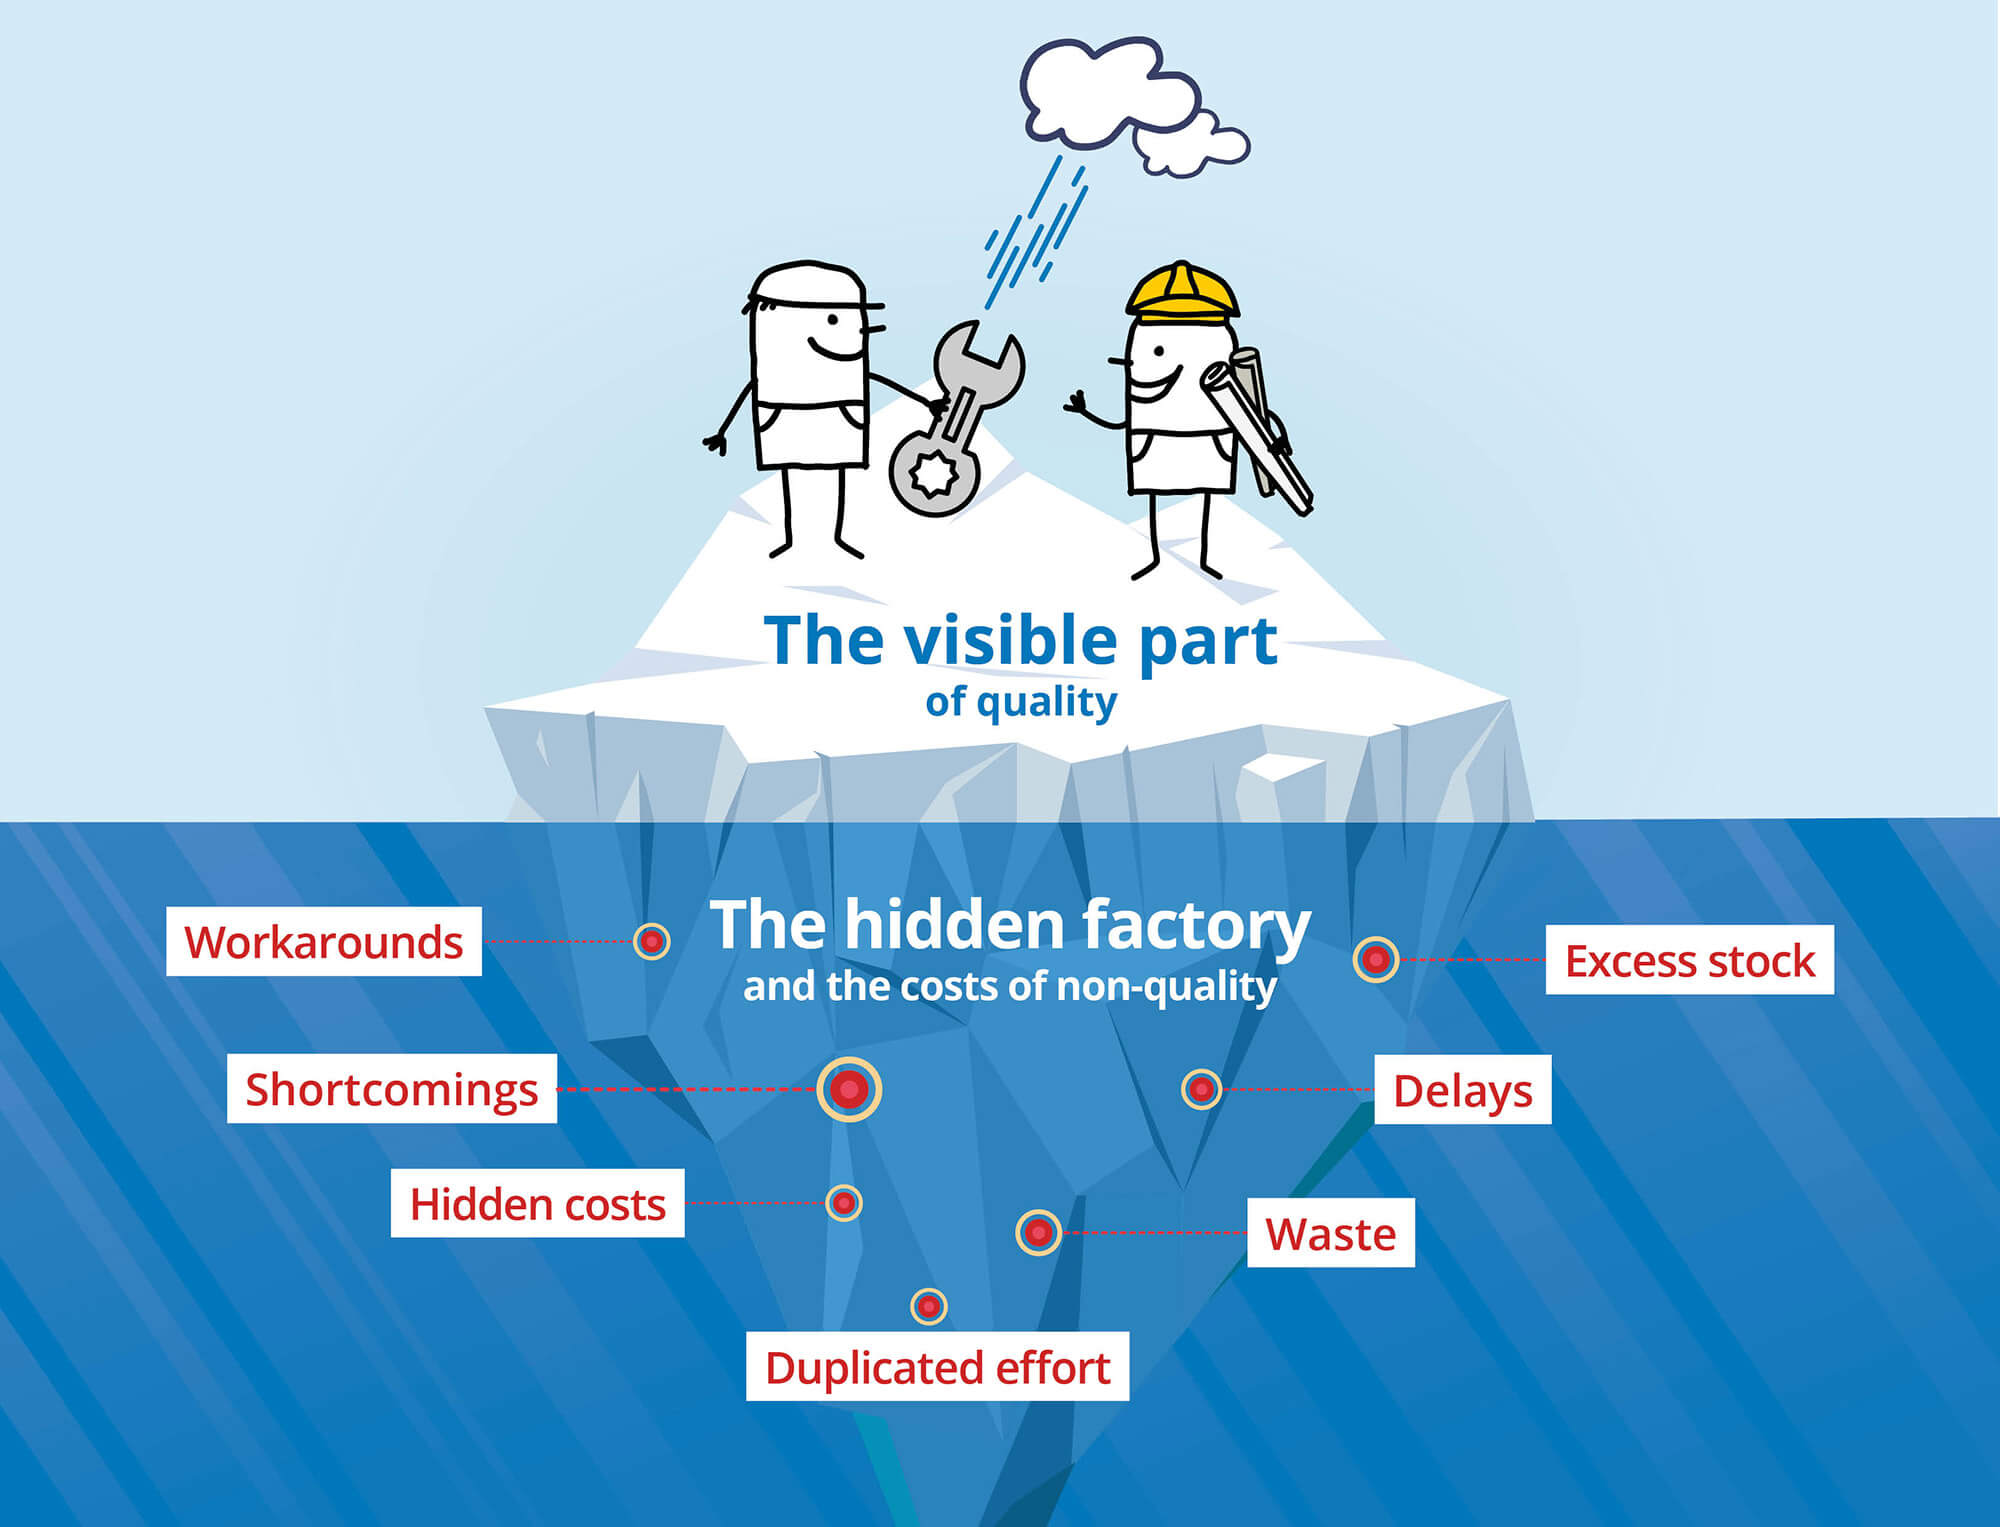 The definition of hidden factory as an infographic